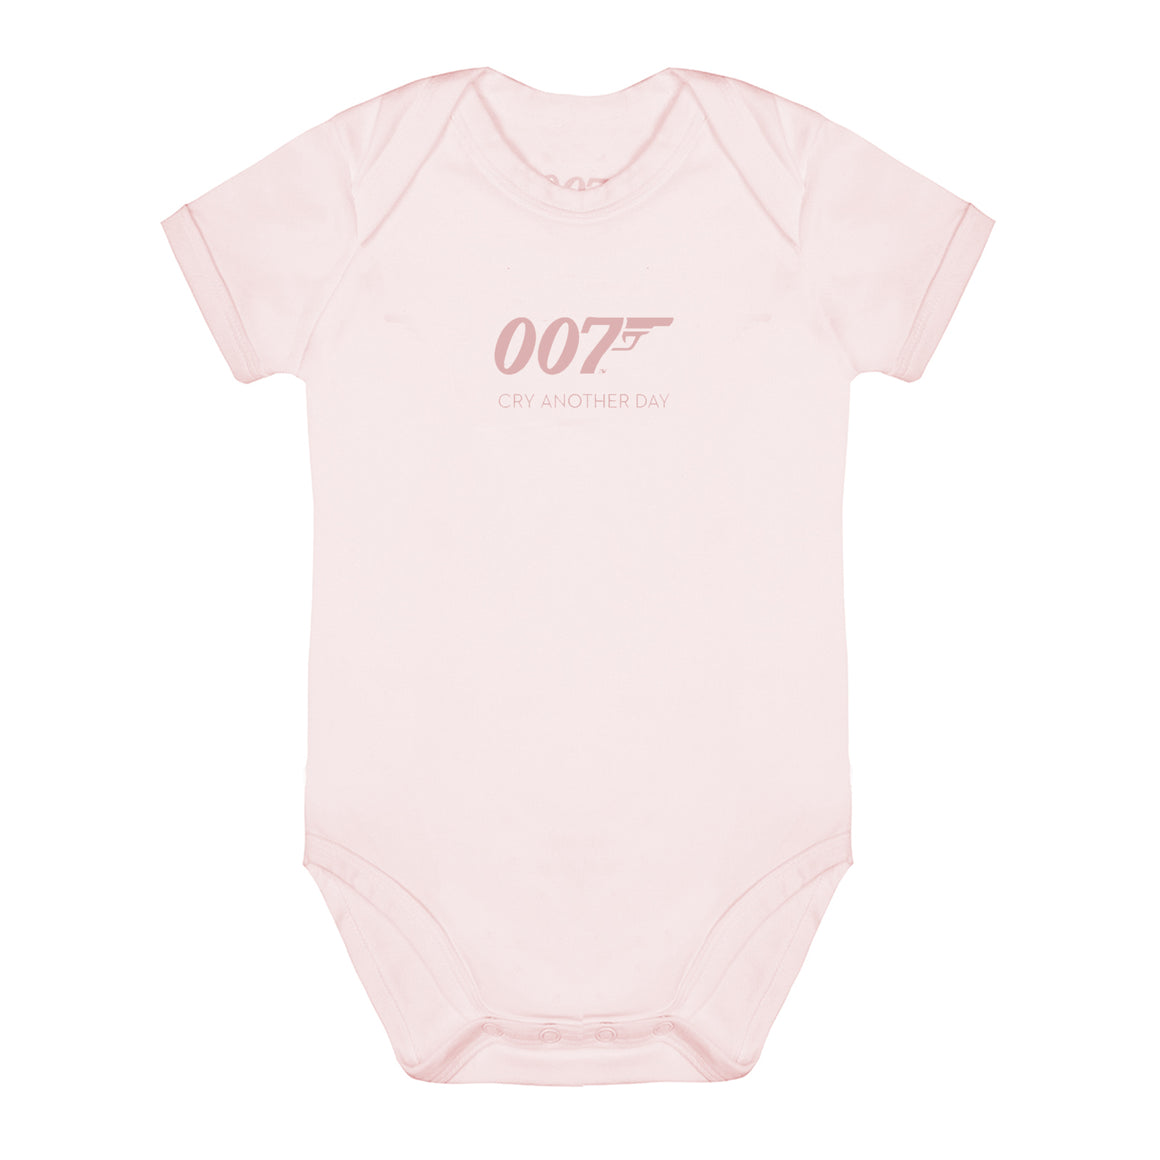 Cry Another Day 007 Pink Baby Bodysuit